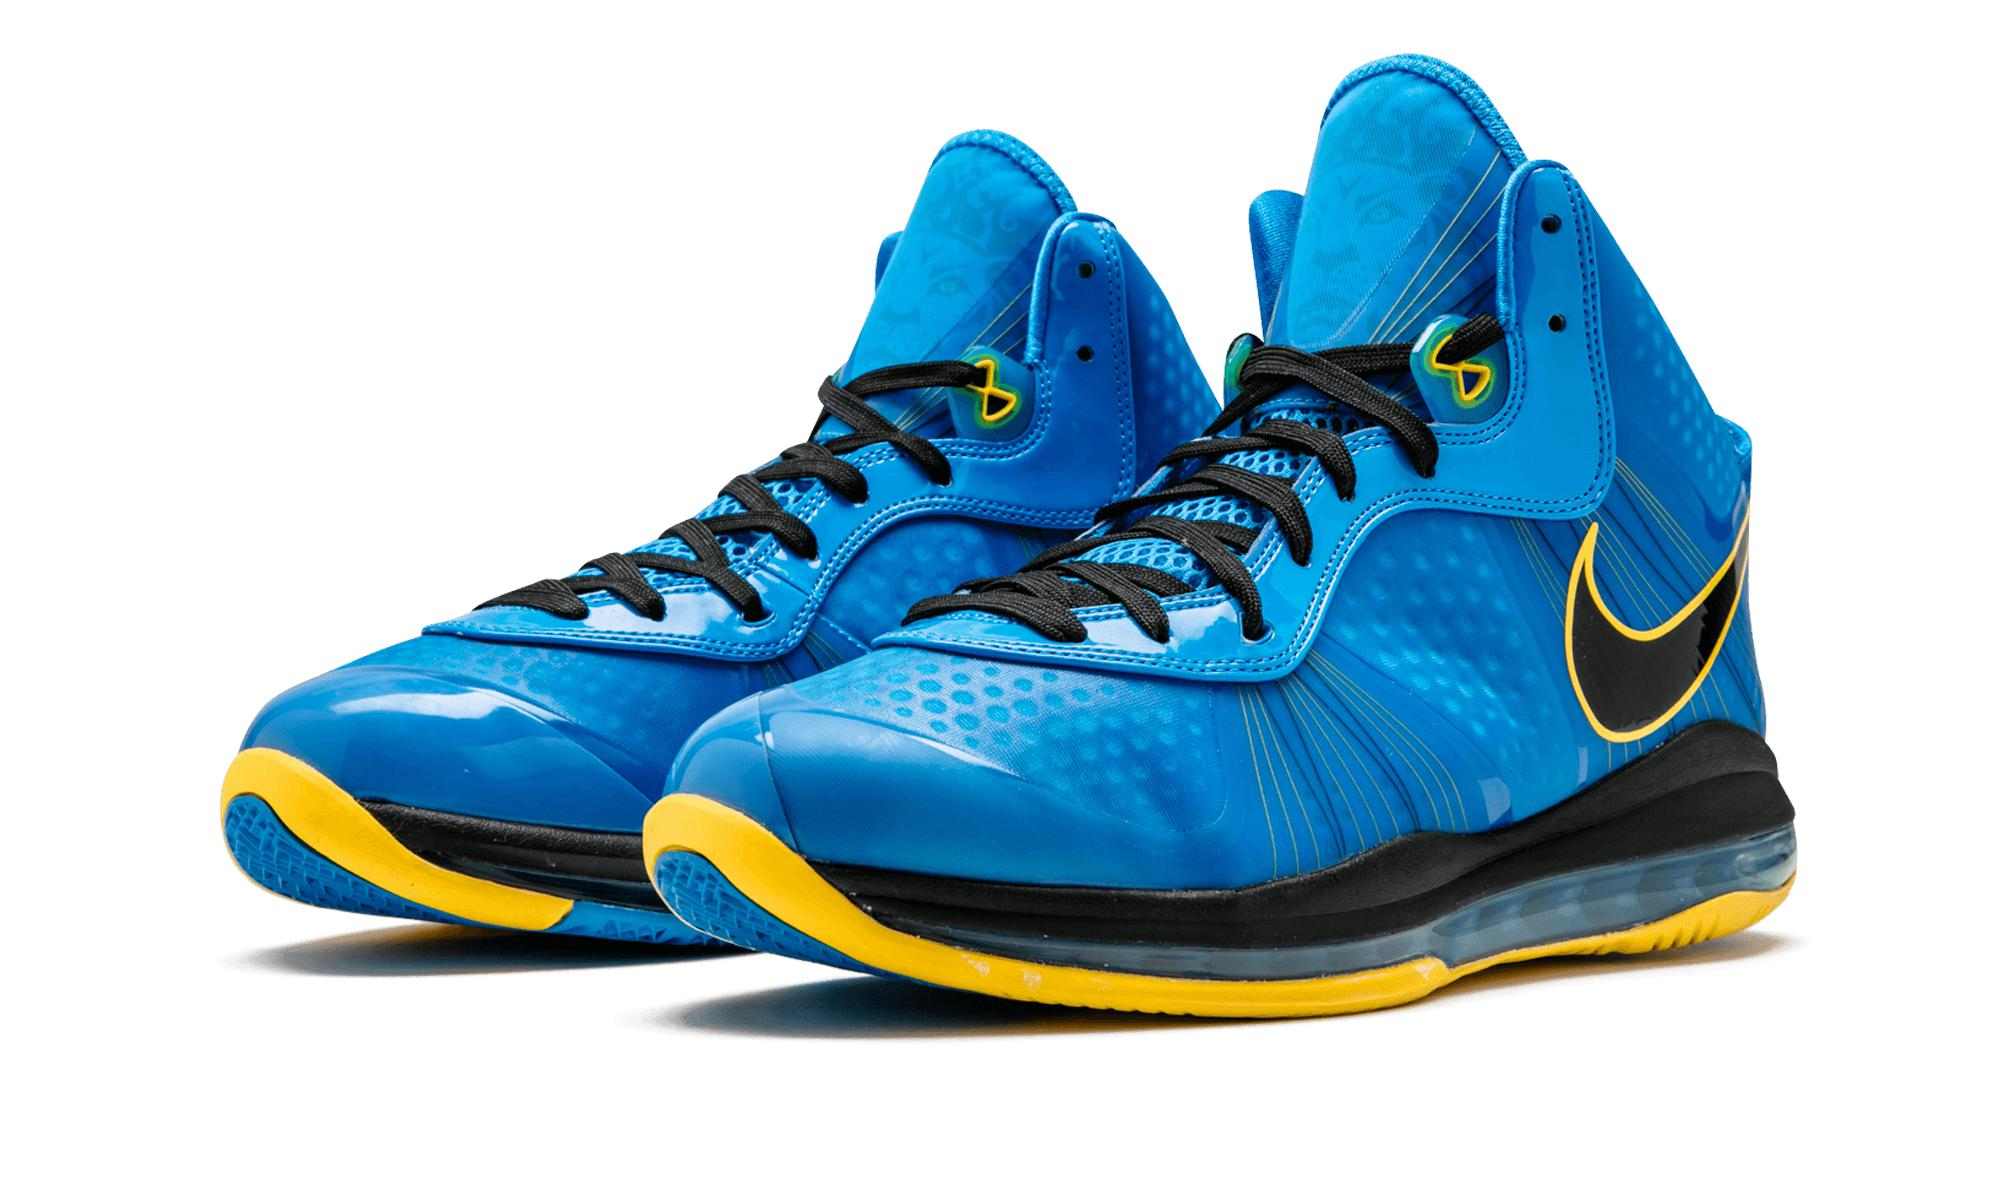 best sneakers b3551 a1c49 Nike - Blue Lebron 8 V 2 Sneakers for Men - Lyst. View fullscreen